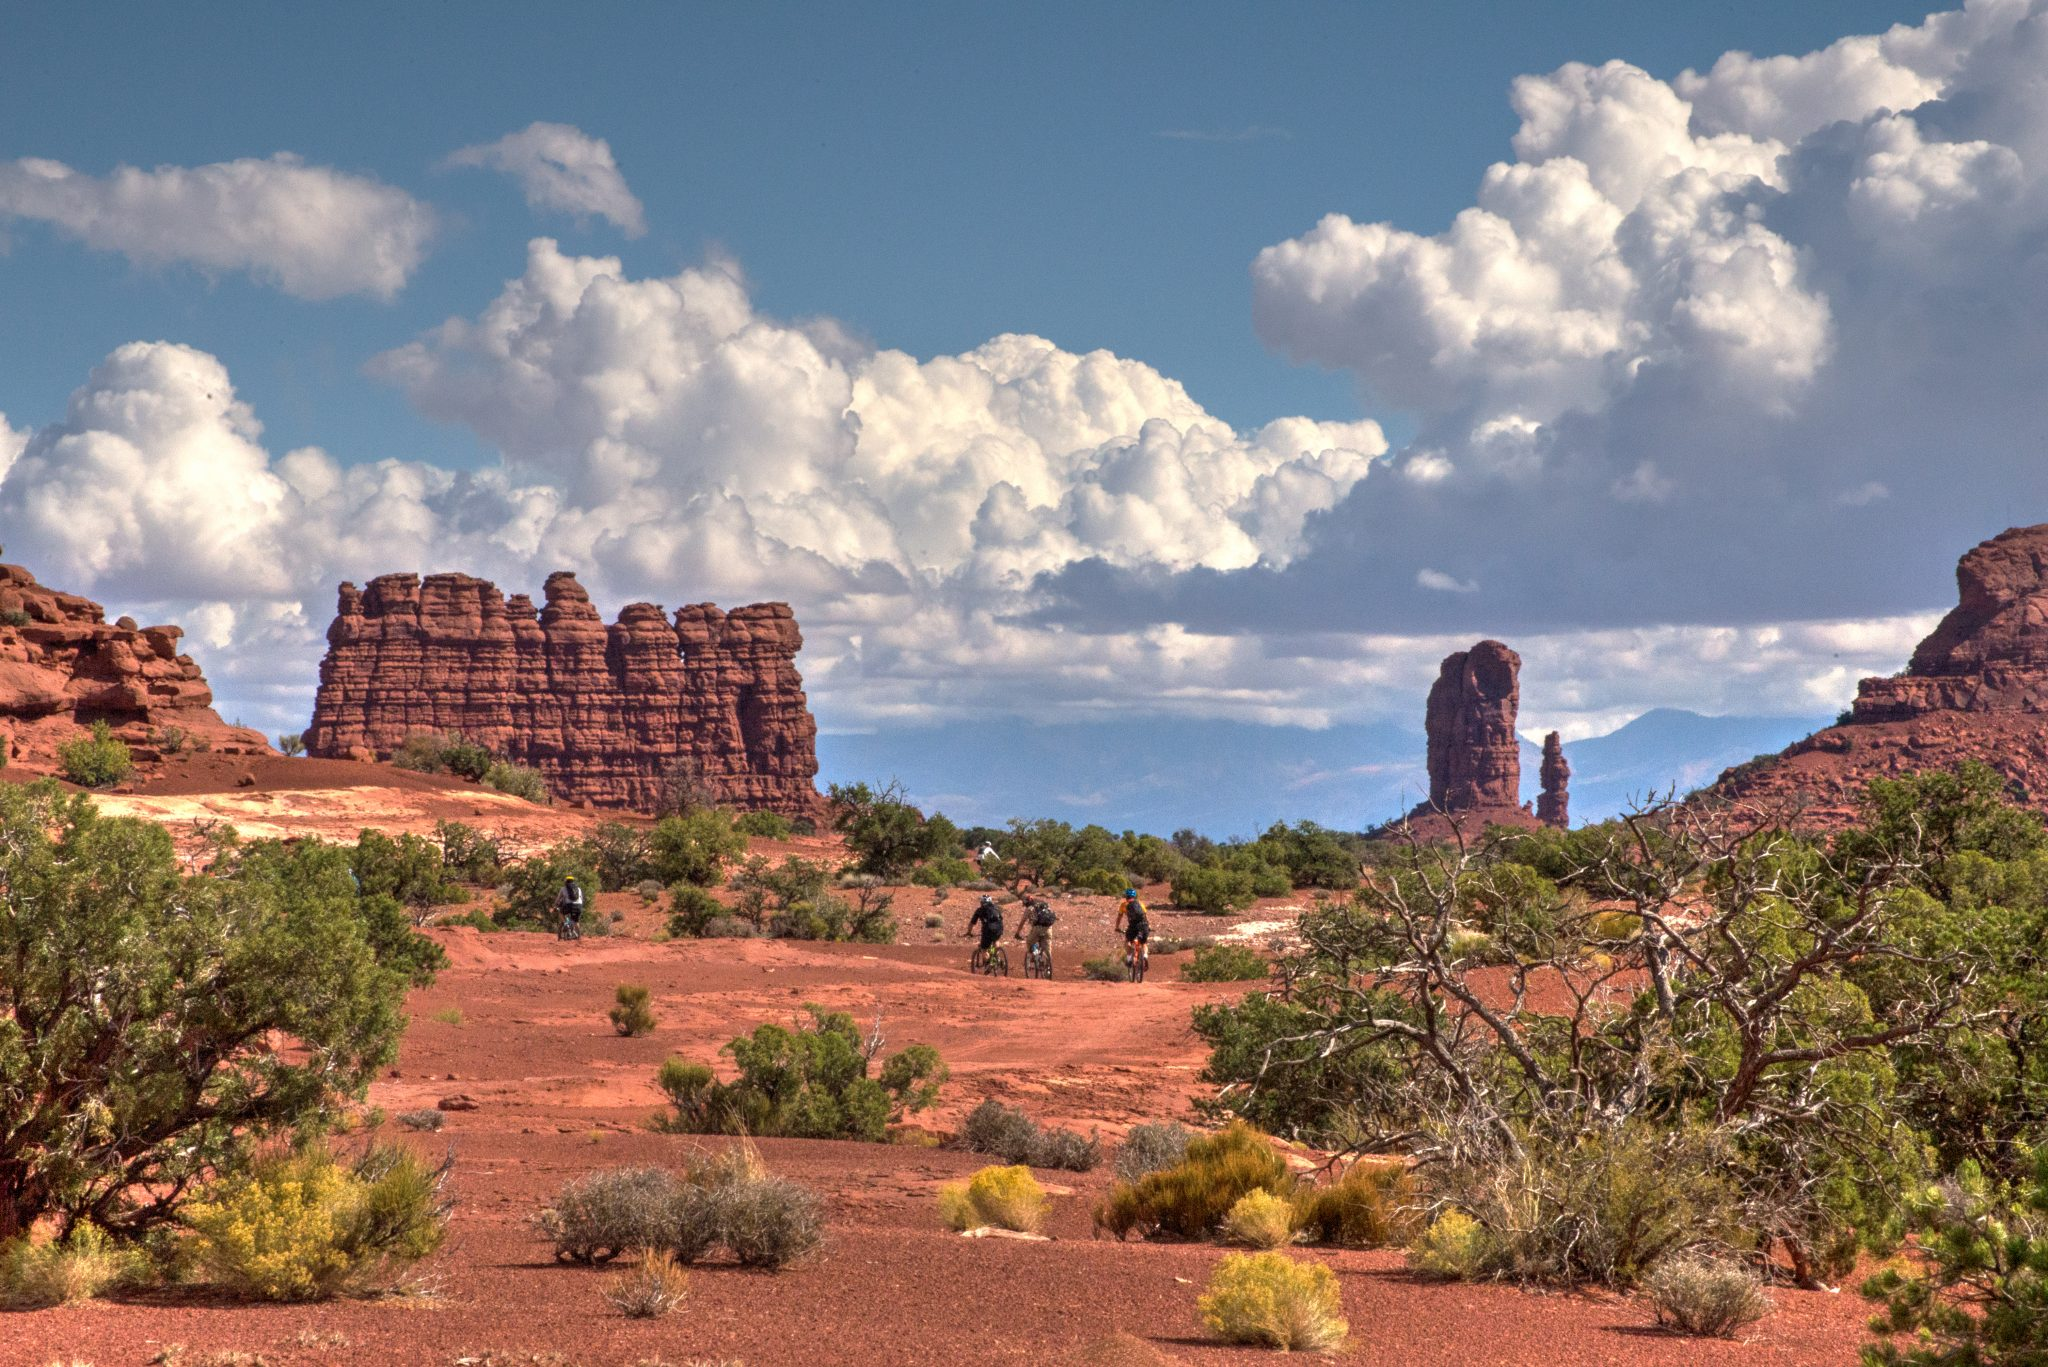 The ride out to Standing Rocks is one of the highlights, for many riders, on The Maze guided mountain bike tour in Canyonlands National Park